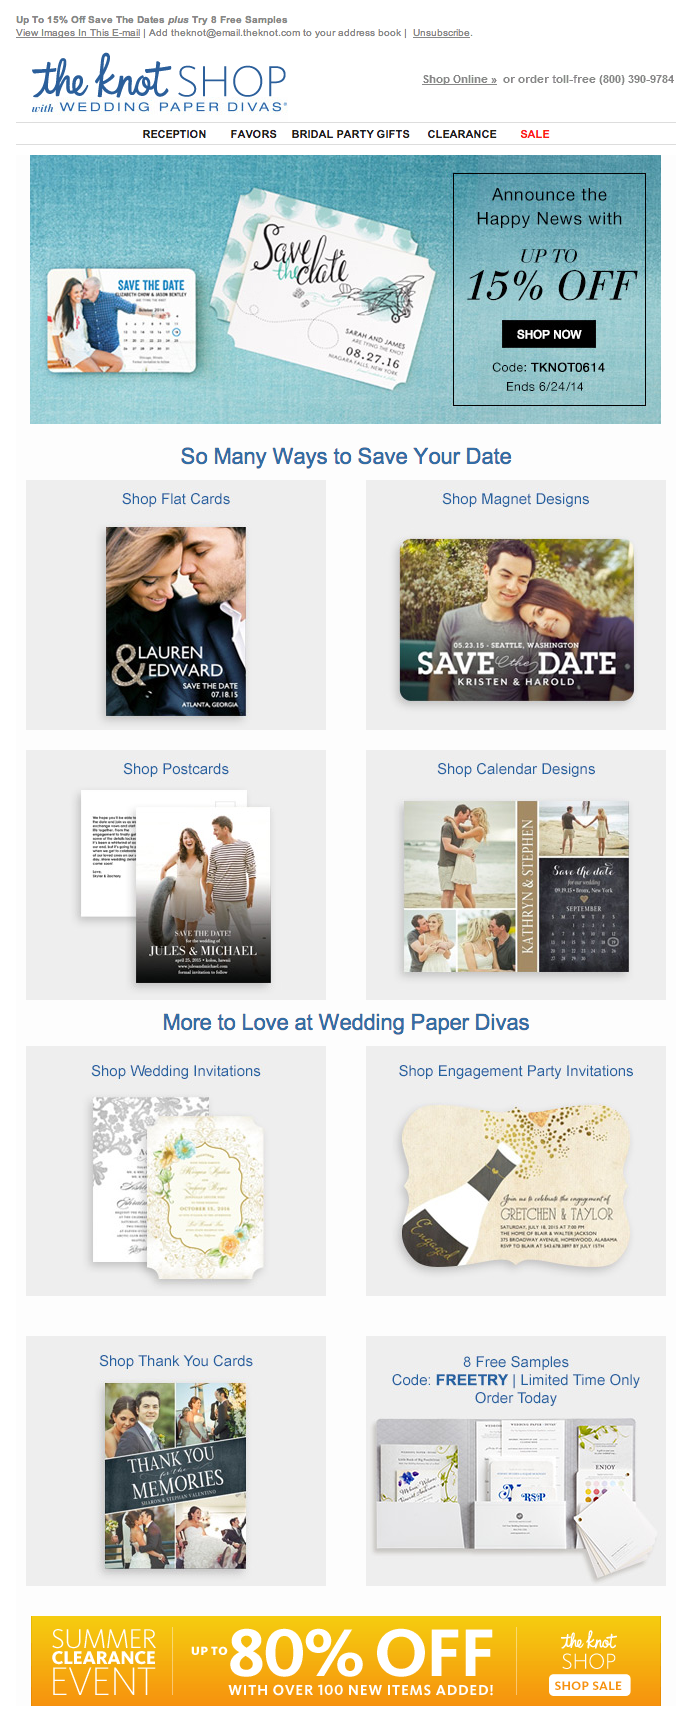 The Knot Wedding Registry Email 2014 Wedding Paper Divas Calendar Design Email Marketing Design